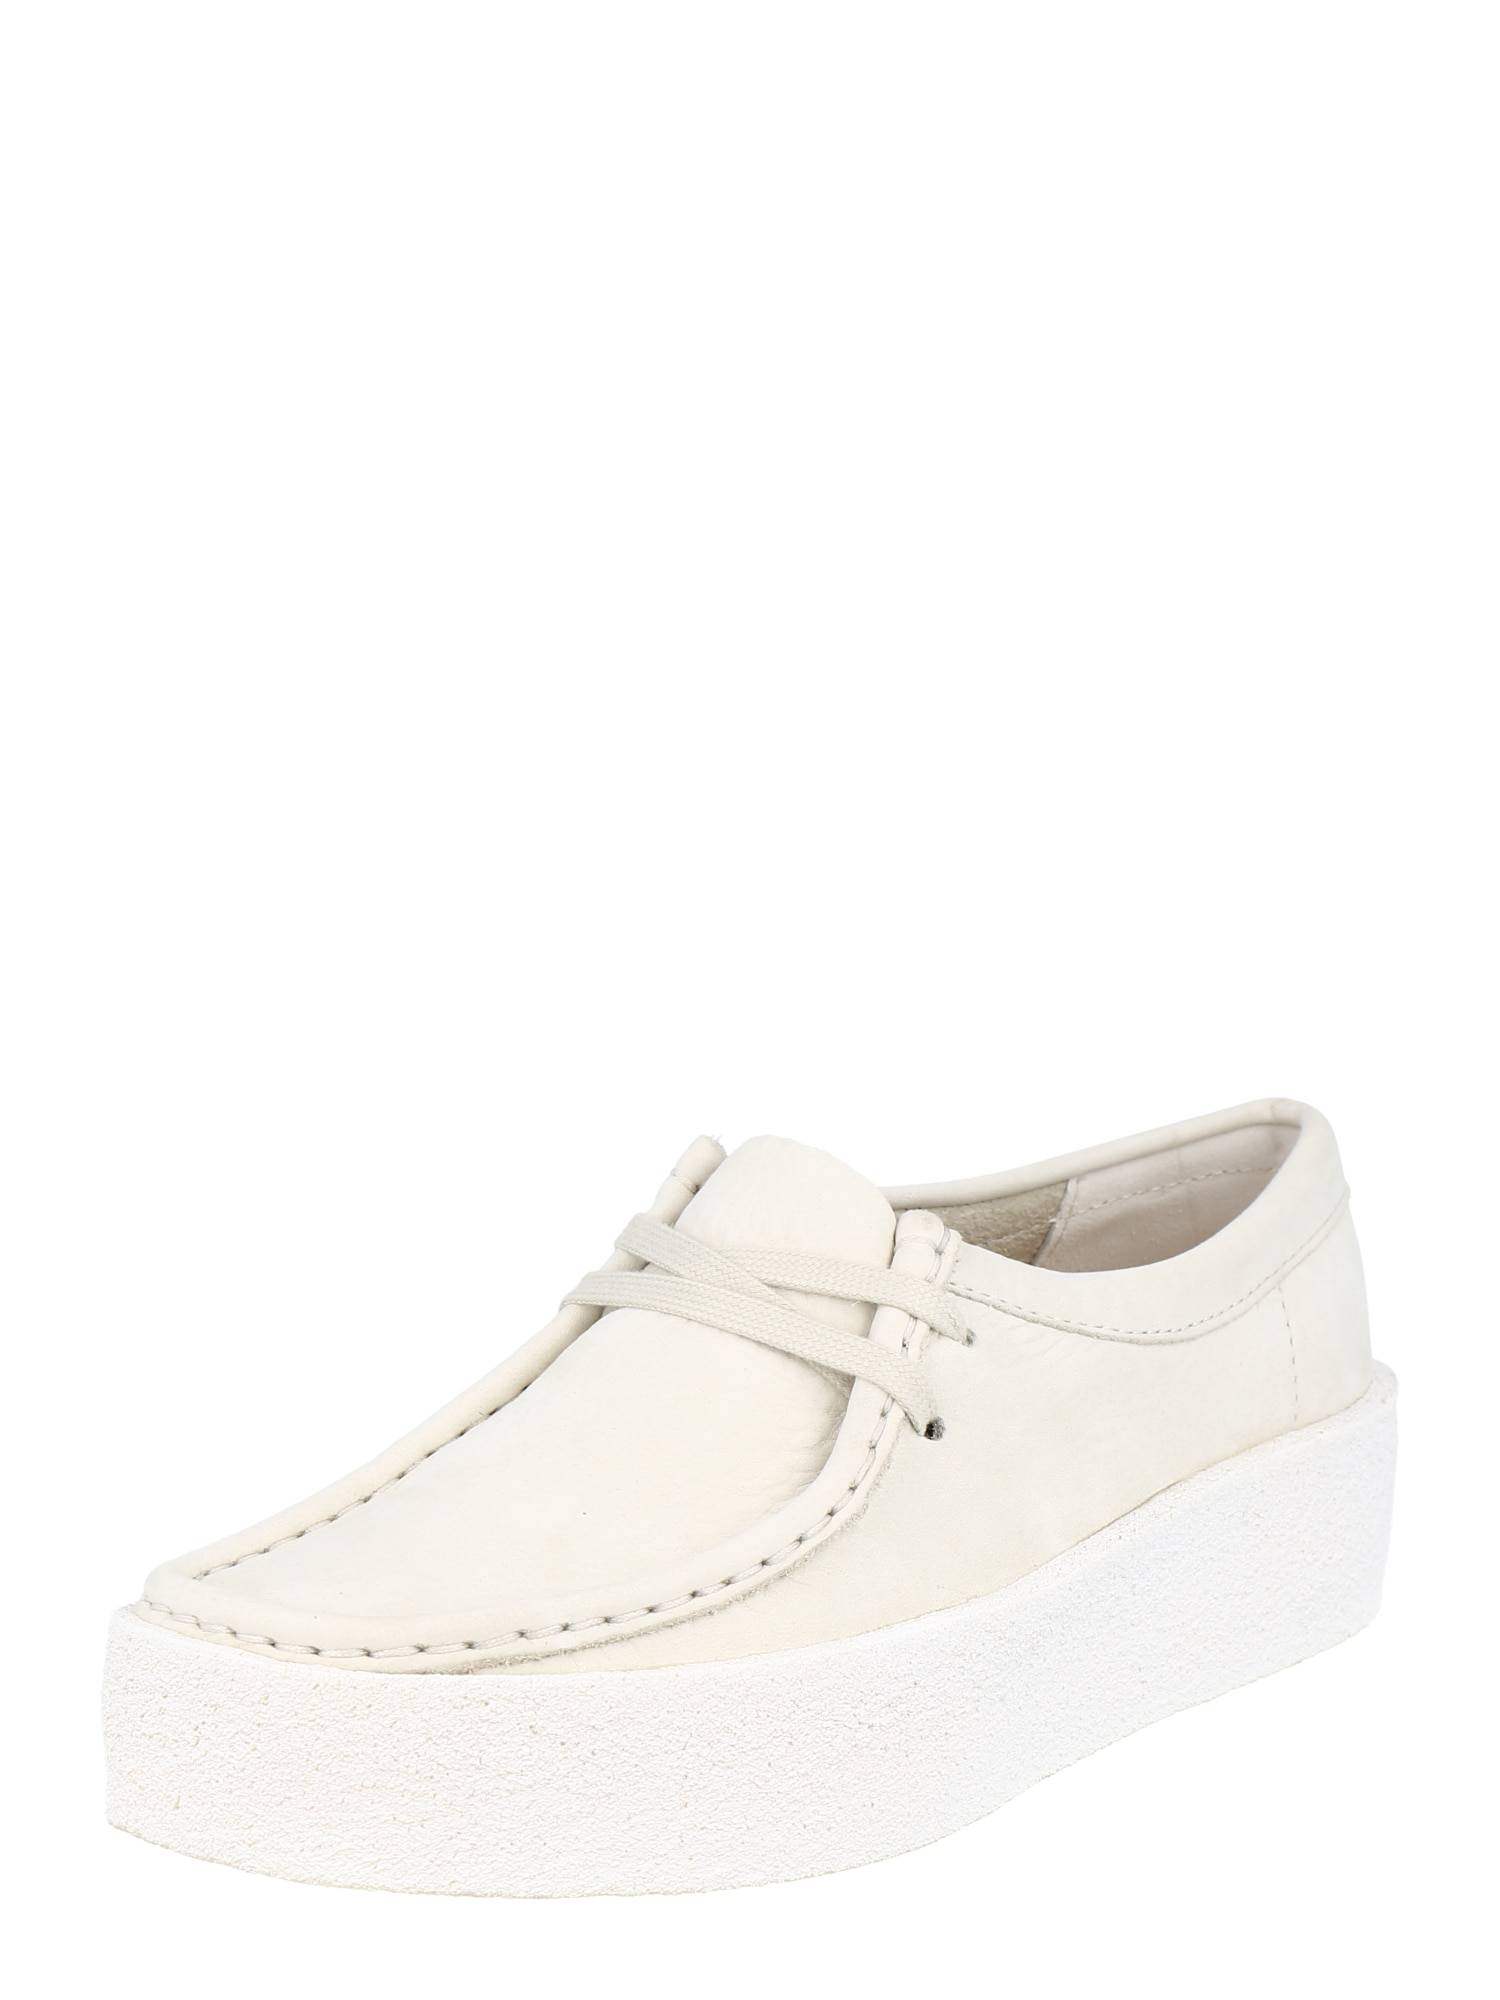 Clarks Originals Chaussure à lacets 'Wallabee Cup'  - Blanc - Taille: 5 - female